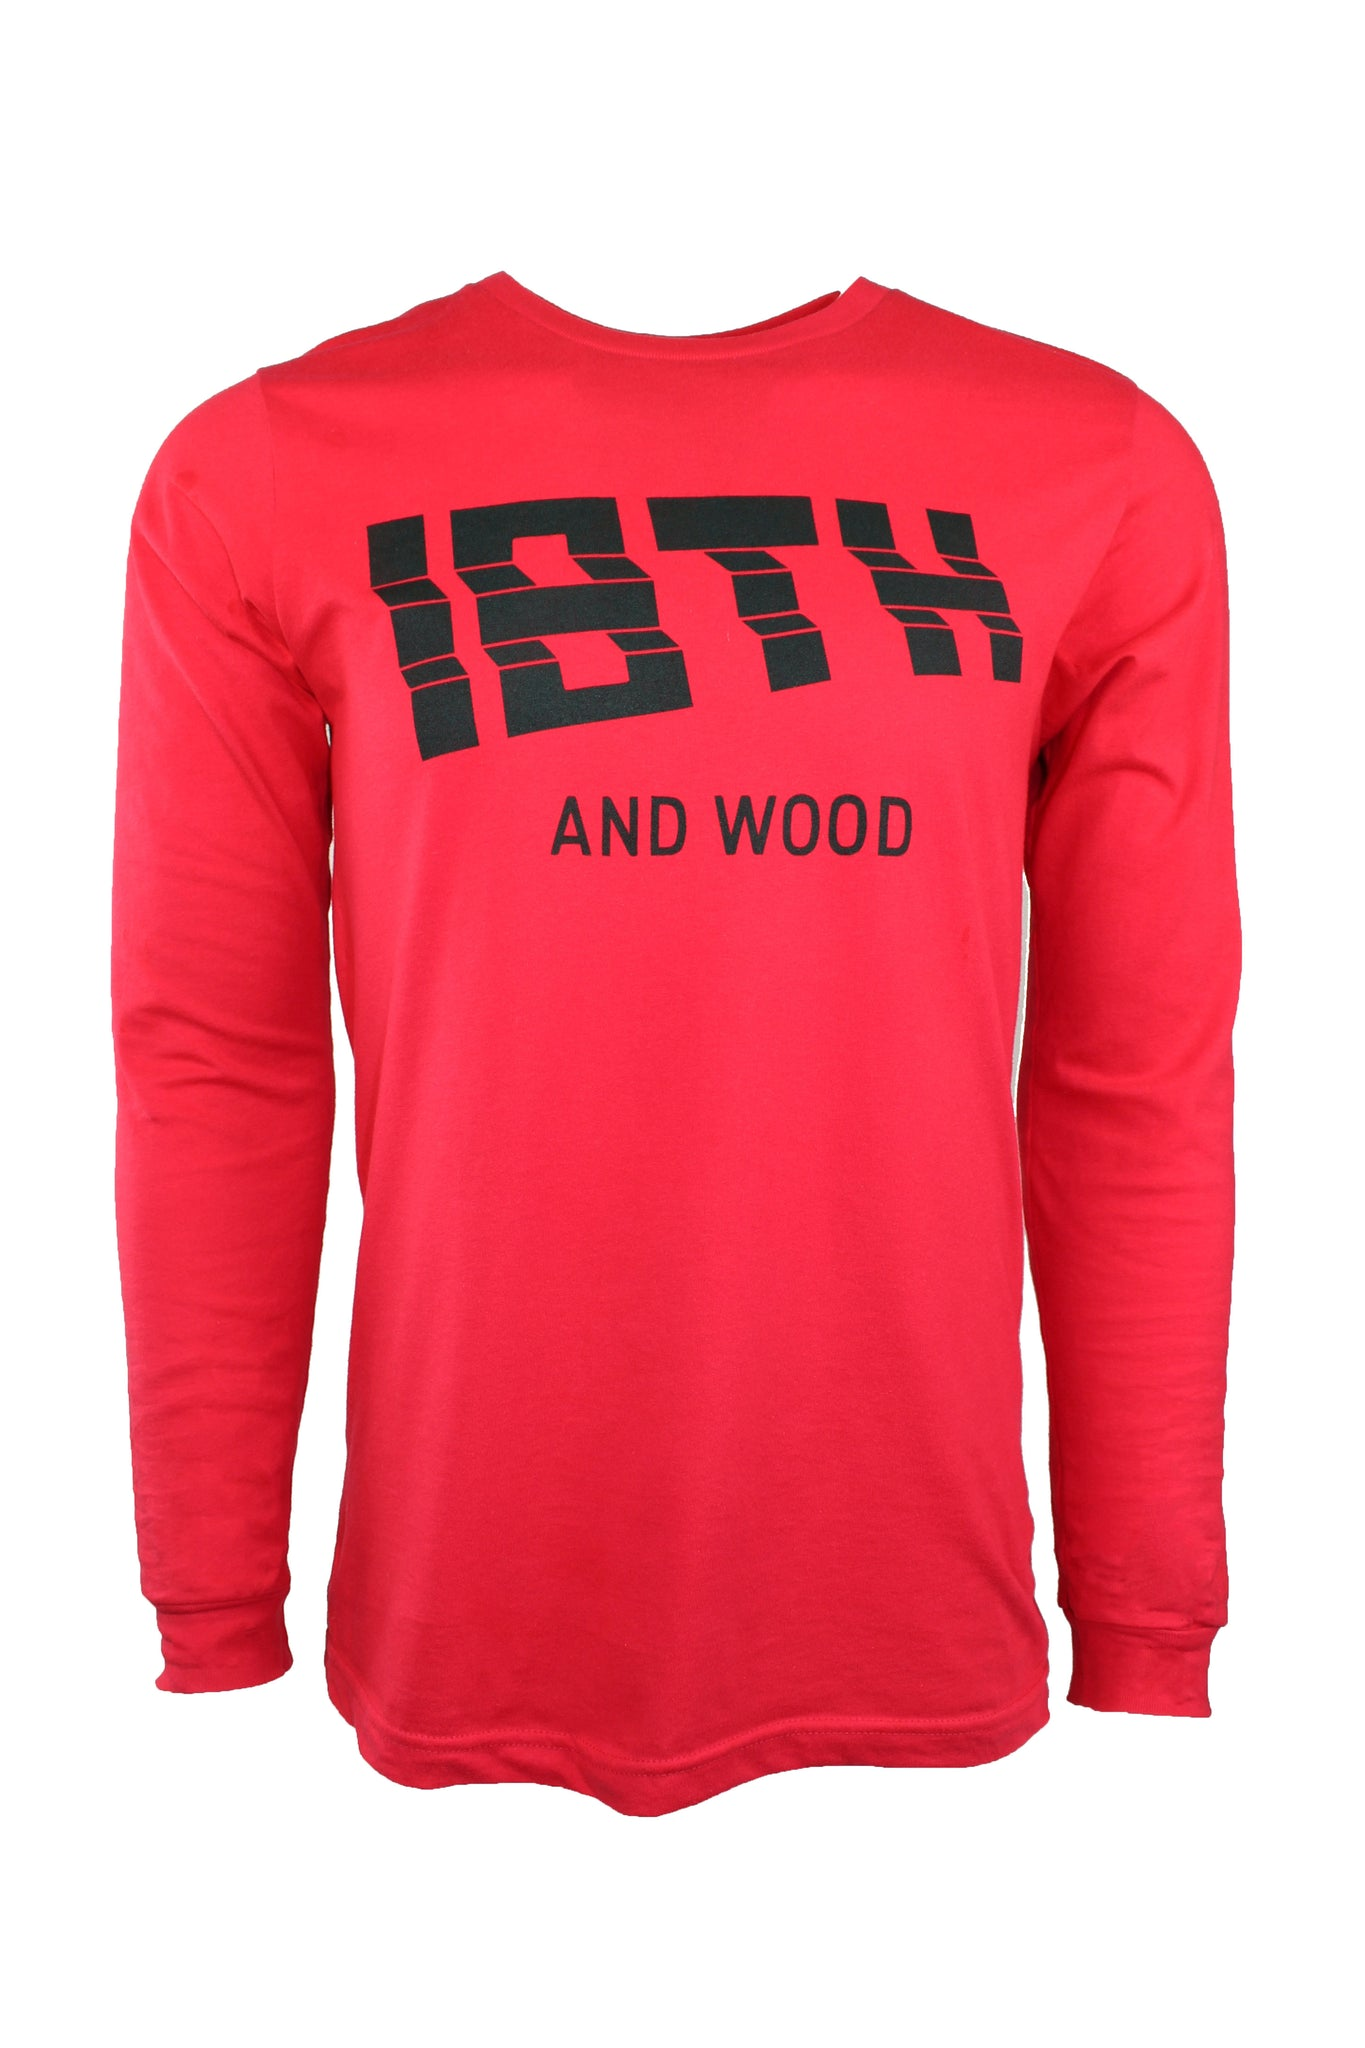 18th & Wood Red Logo Tee